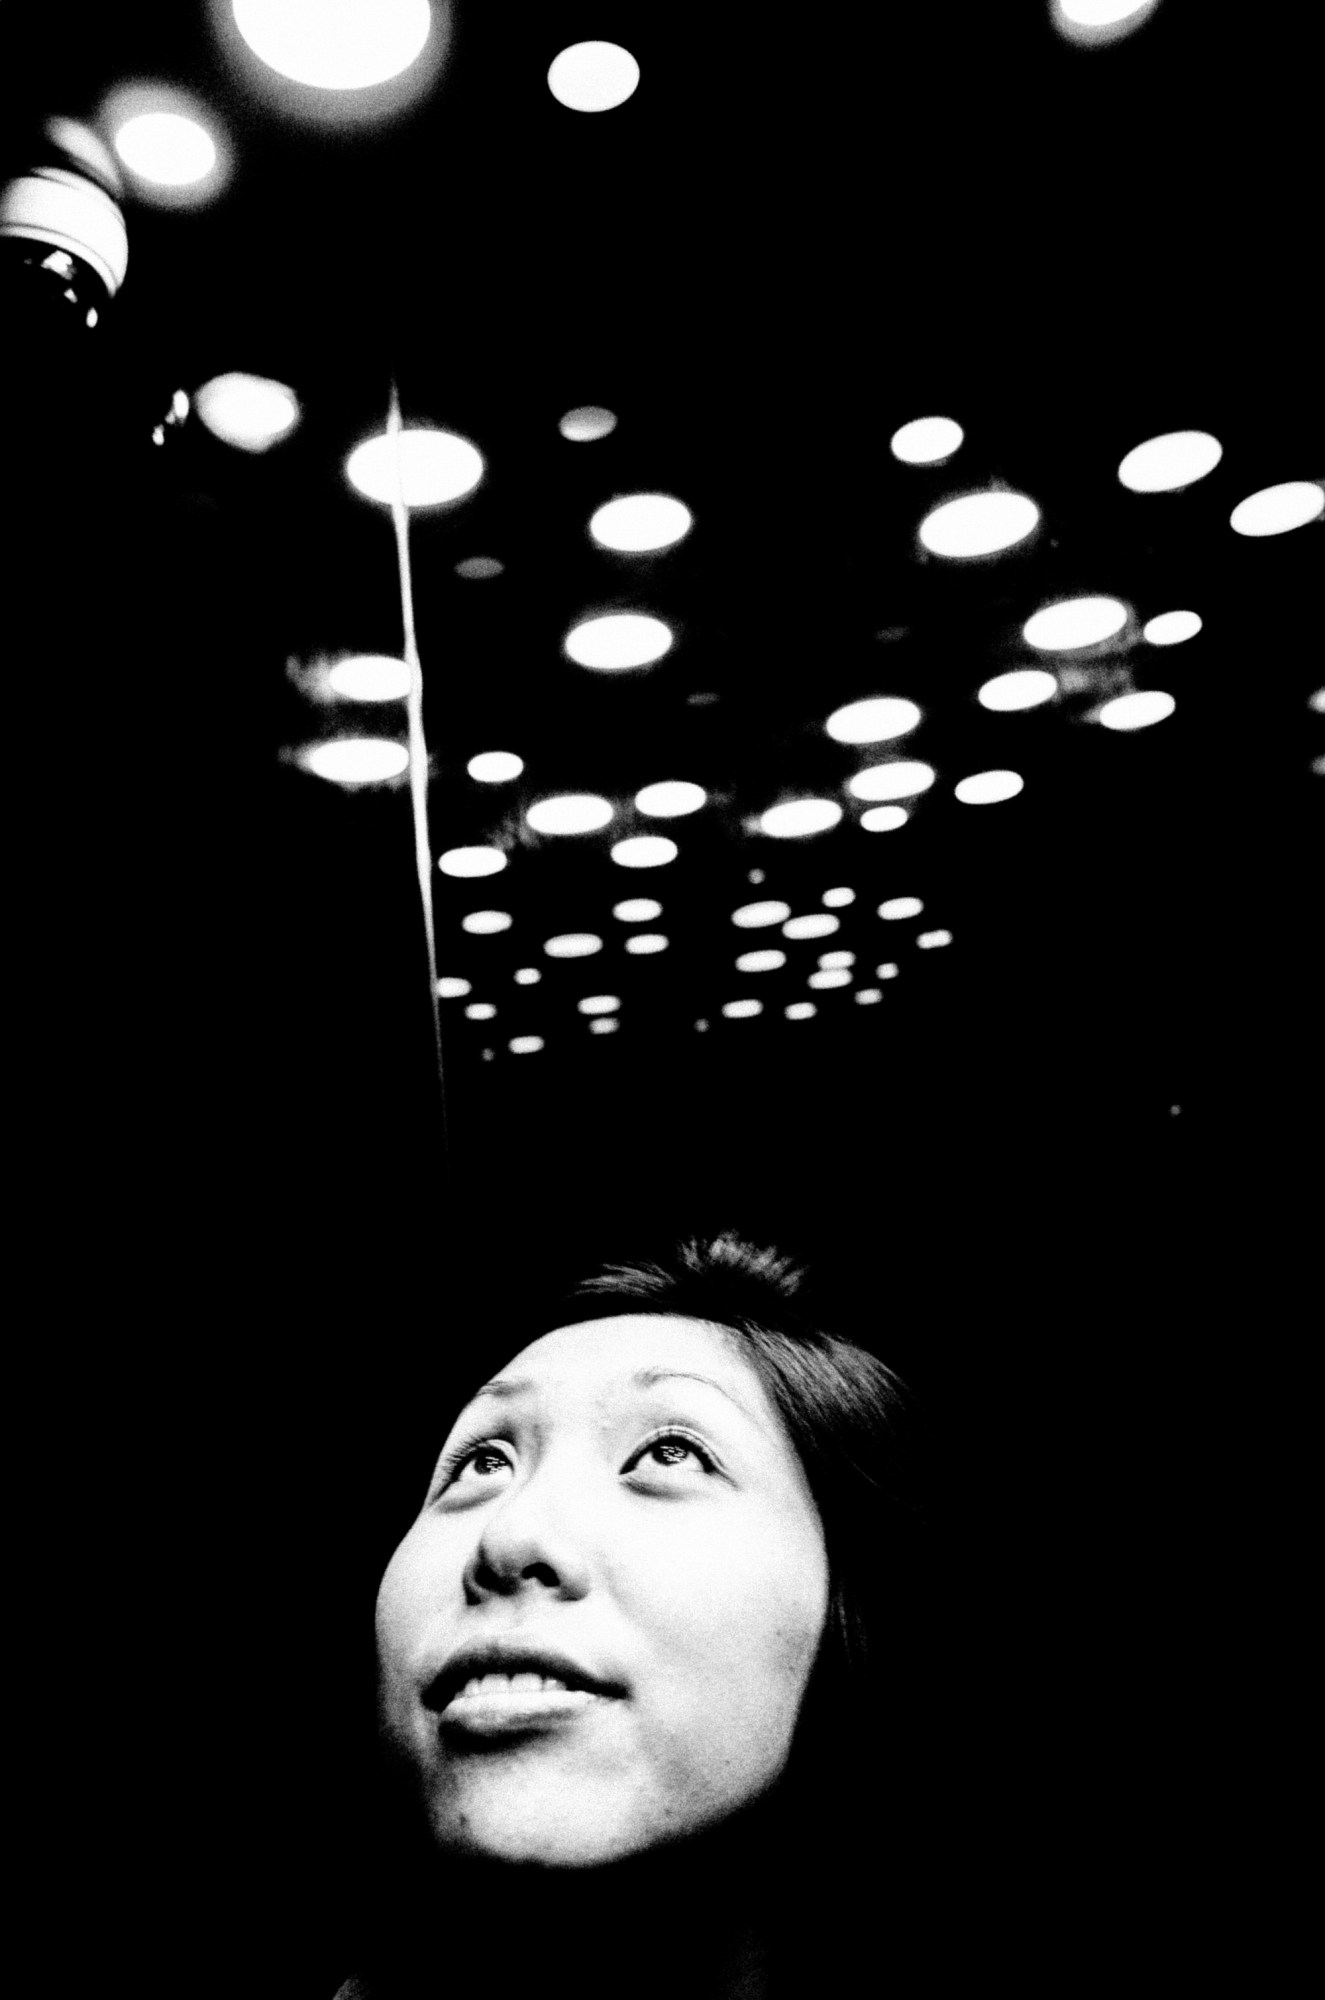 Cindy looking up in the elevator with circles. Hanoi, 2017